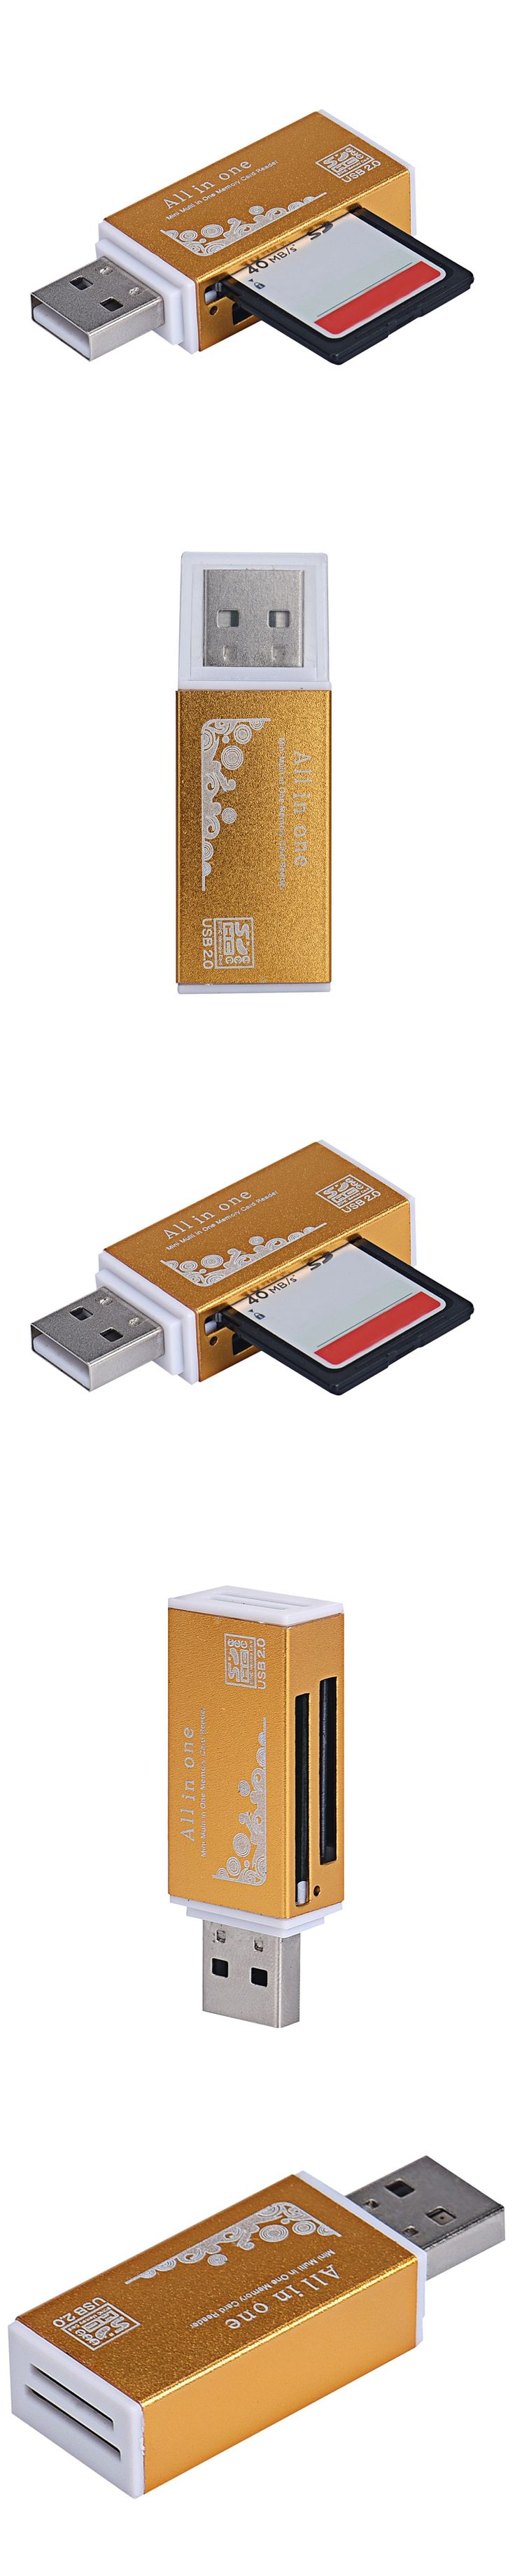 gold color Multi Card Reader High Speed Data Transmission Slim USB 2.0 SDHC Mini Micro SD T-Flash TF M2 Memory Card Reader